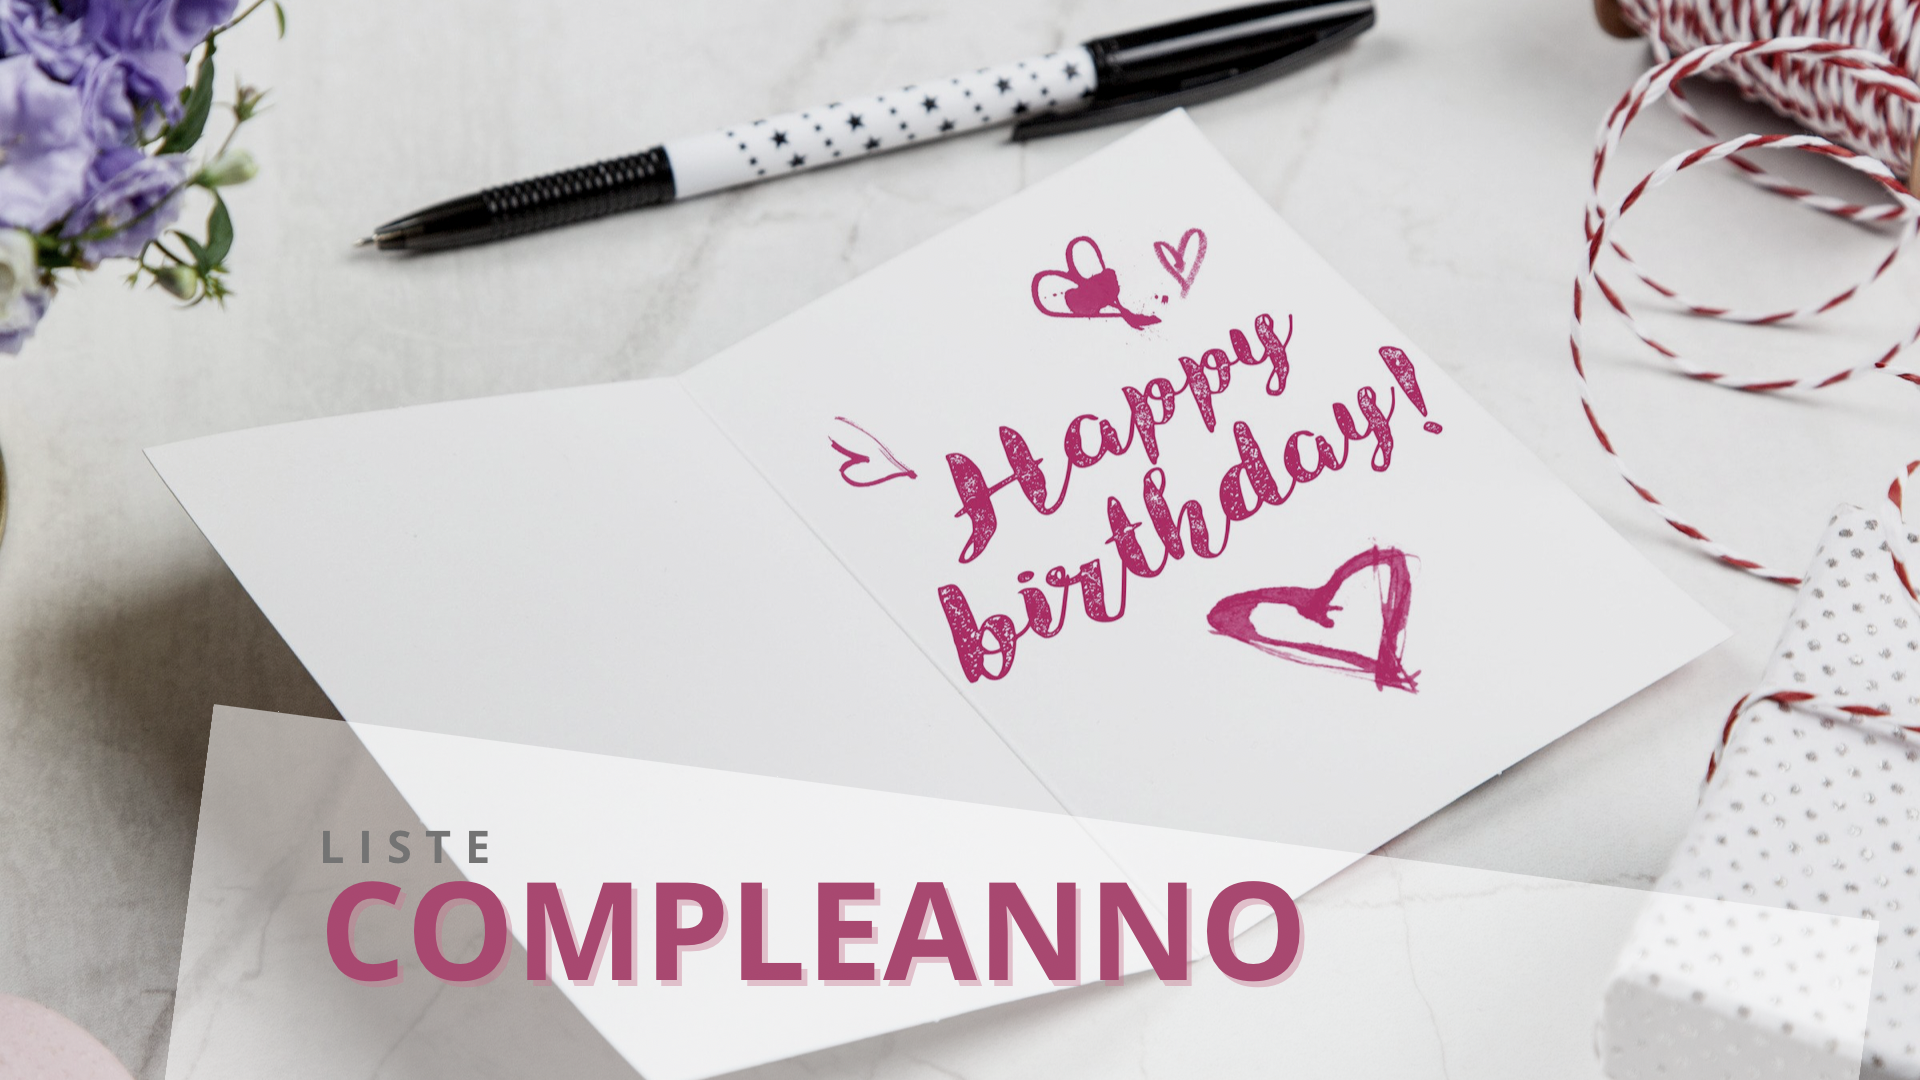 Lista Compleanno